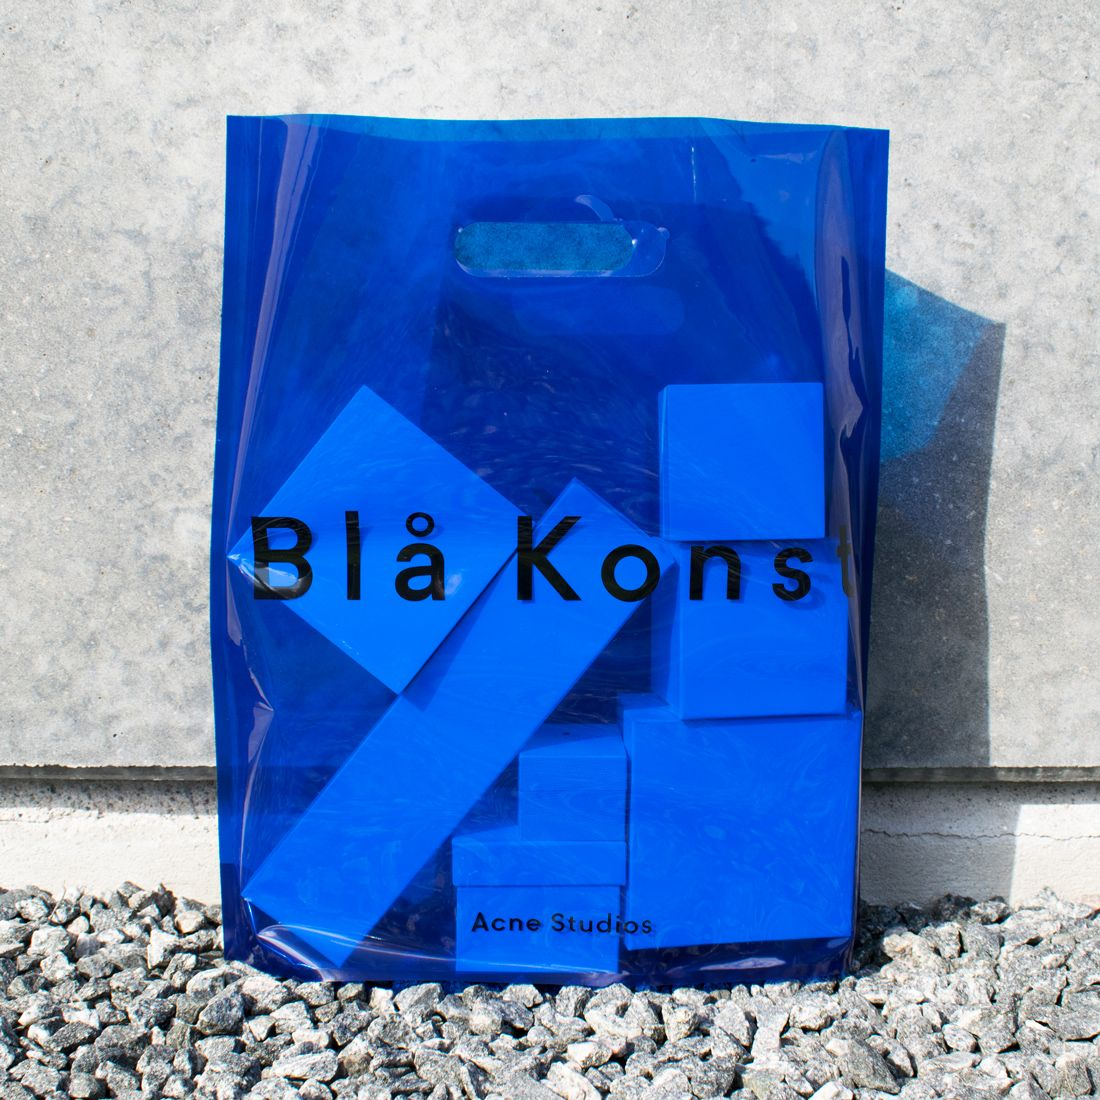 Image result for acne studios bla konst Emballage, Packaging, Posters Conception  Graphique, Inspiration ea019b50433